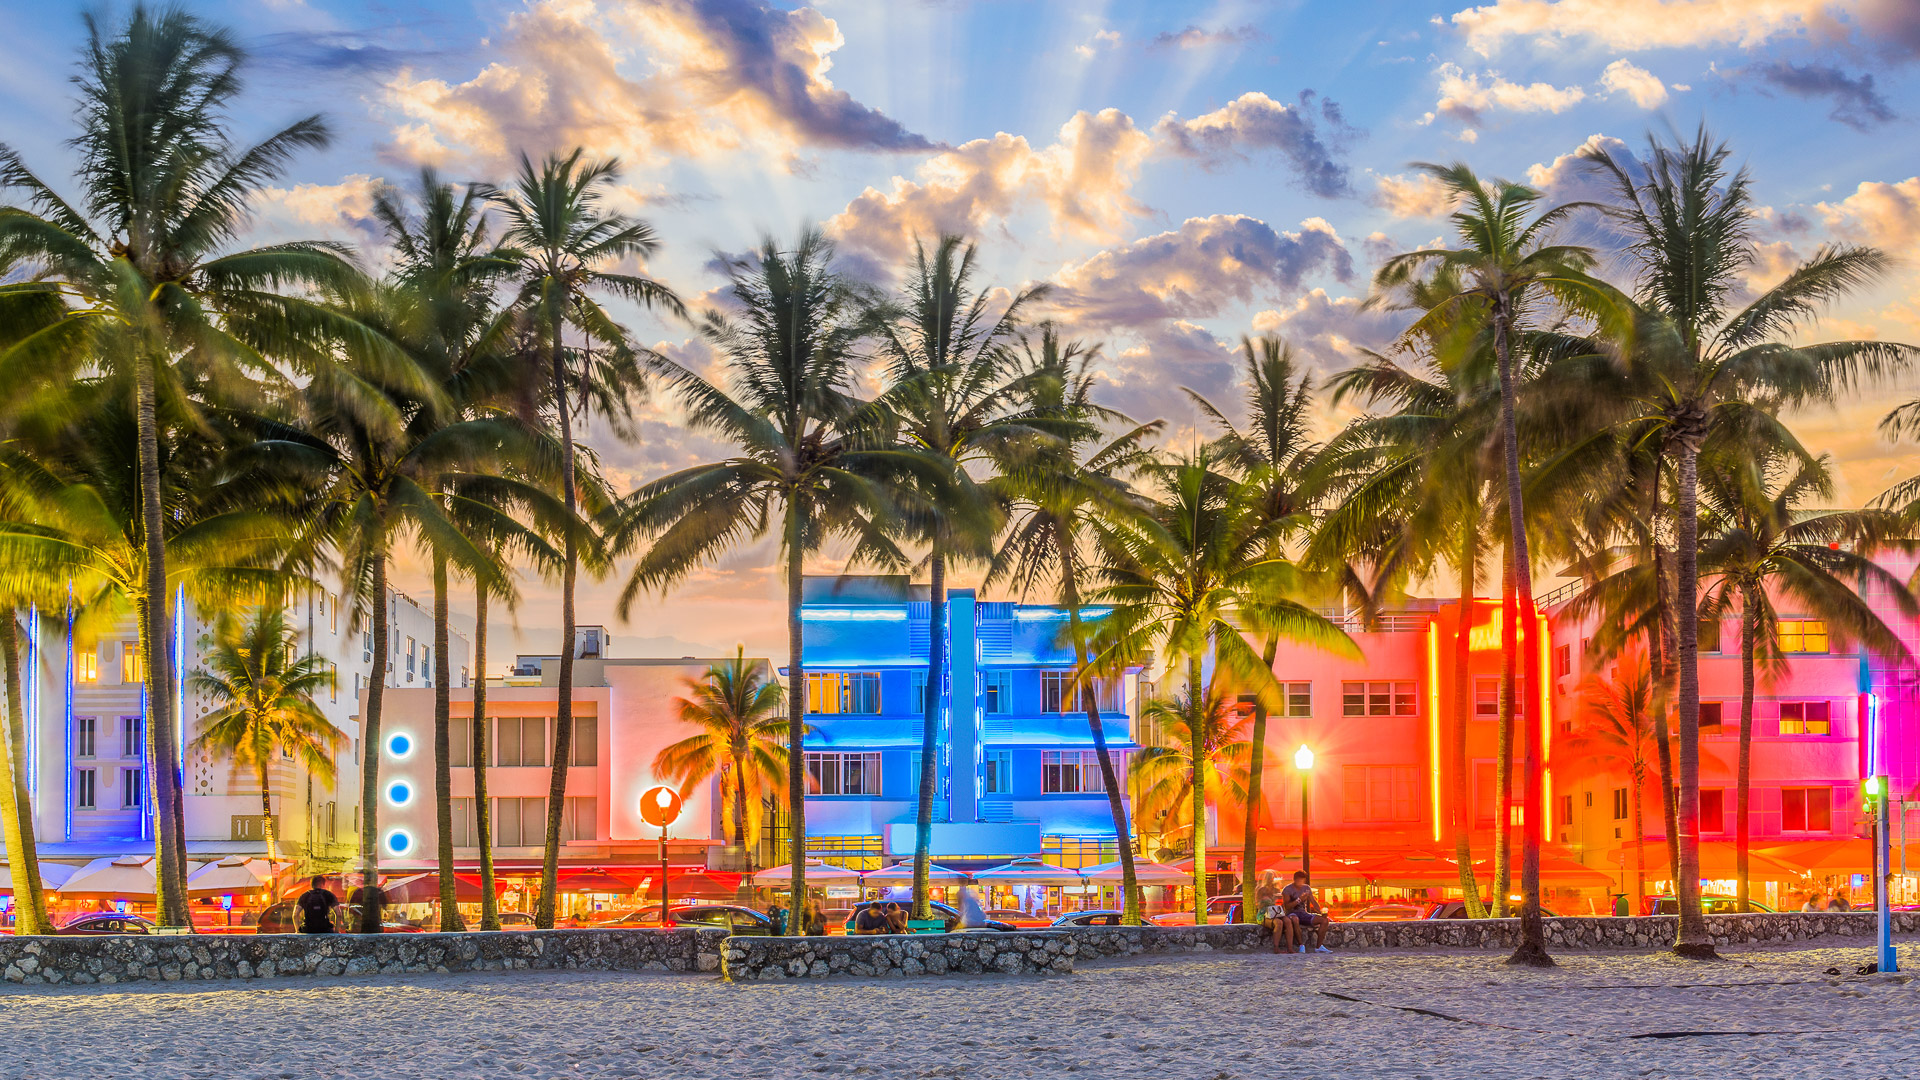 4 Ways to Enjoy South Beach Without Breaking the Bank